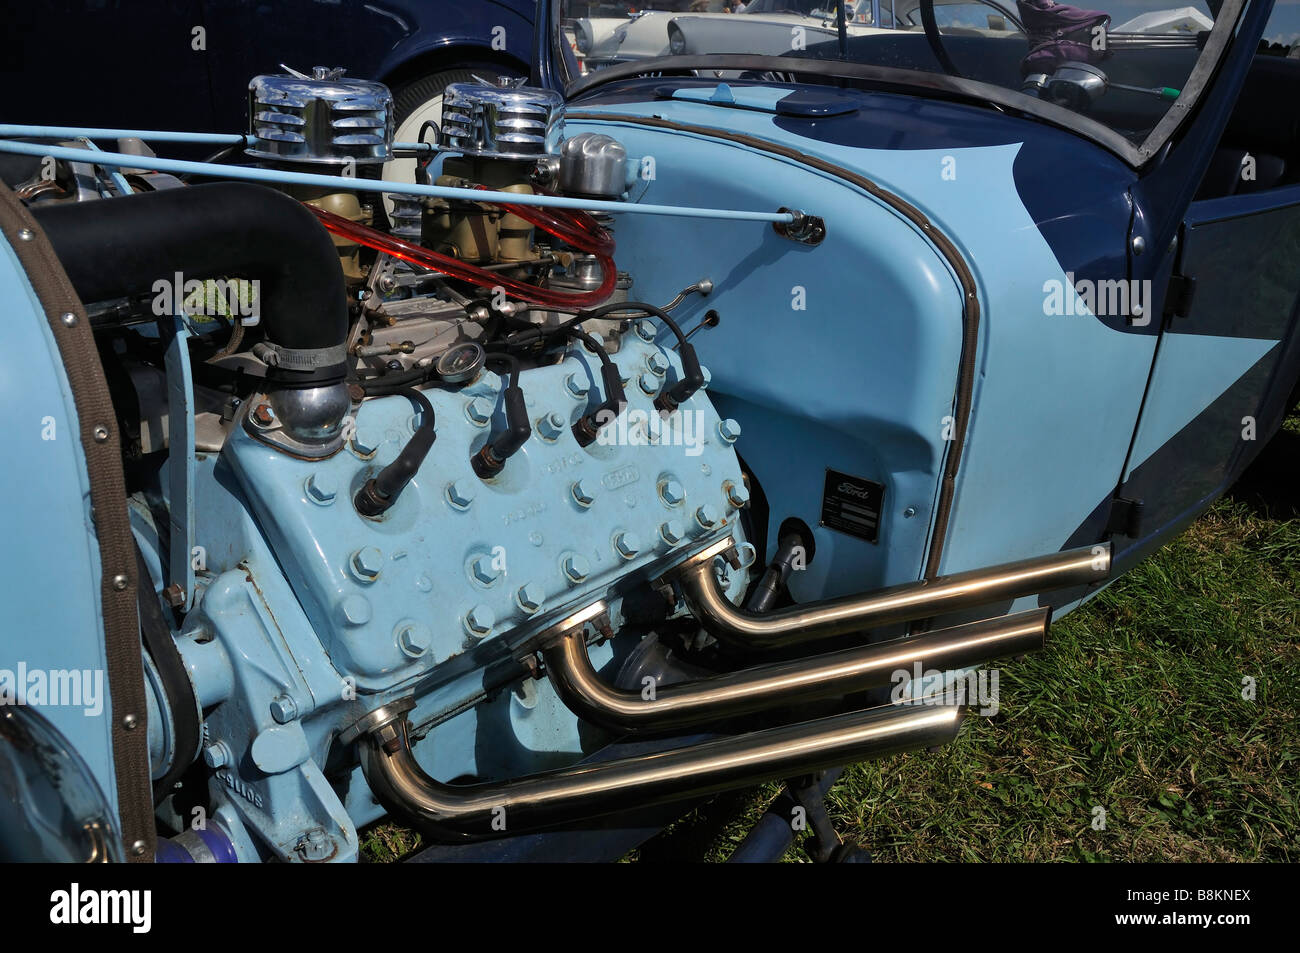 Ford Flathead V8 Engine Stock Photos 1948 Truck 6 In Model A Pickup 1950 S American Hotrod Car Image